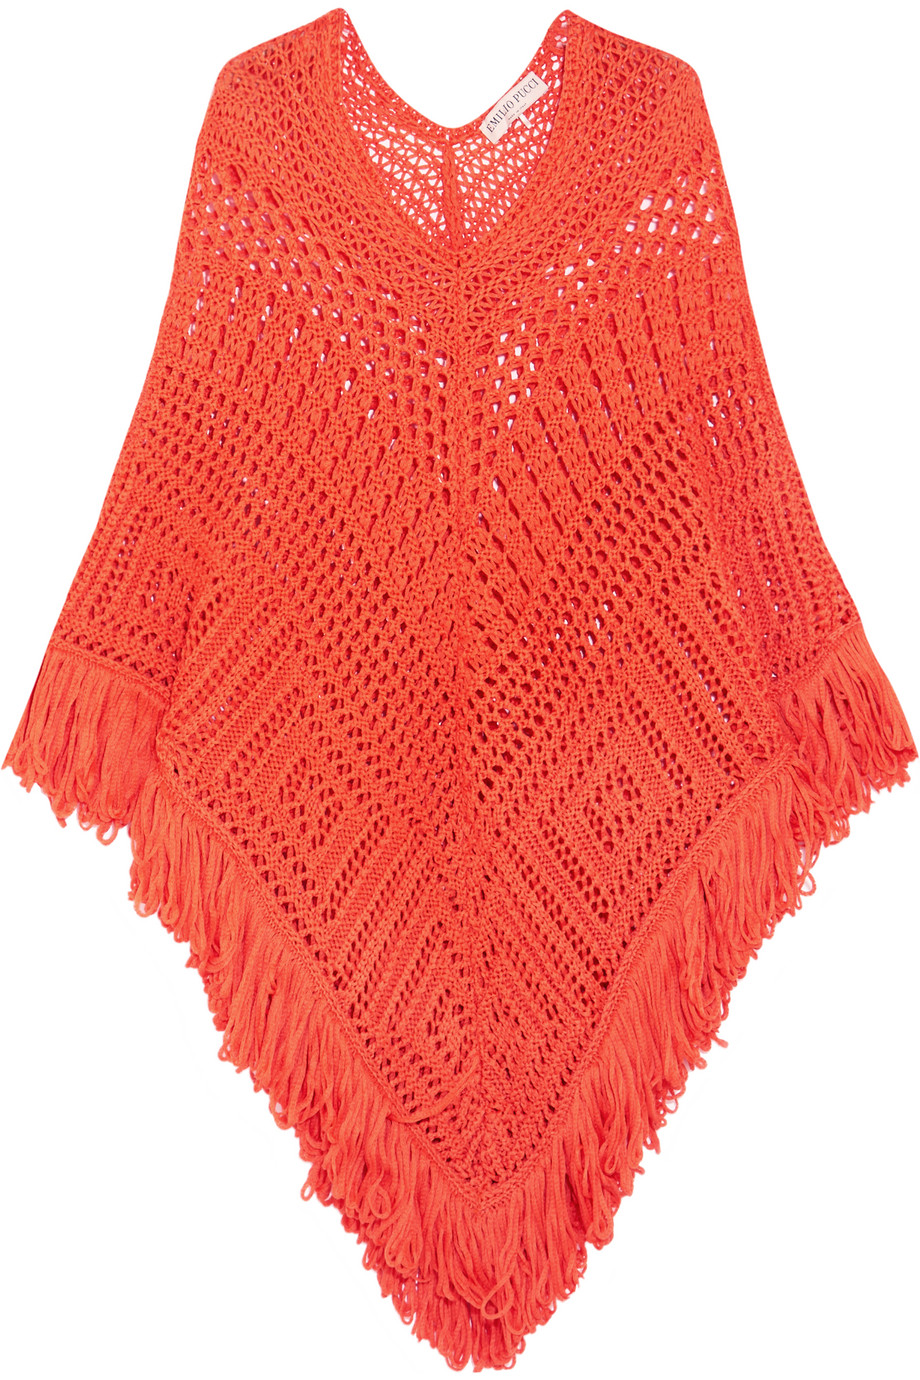 Emilio Pucci Crocheted Cotton Poncho, Bright Orange, Women's, Size: One size